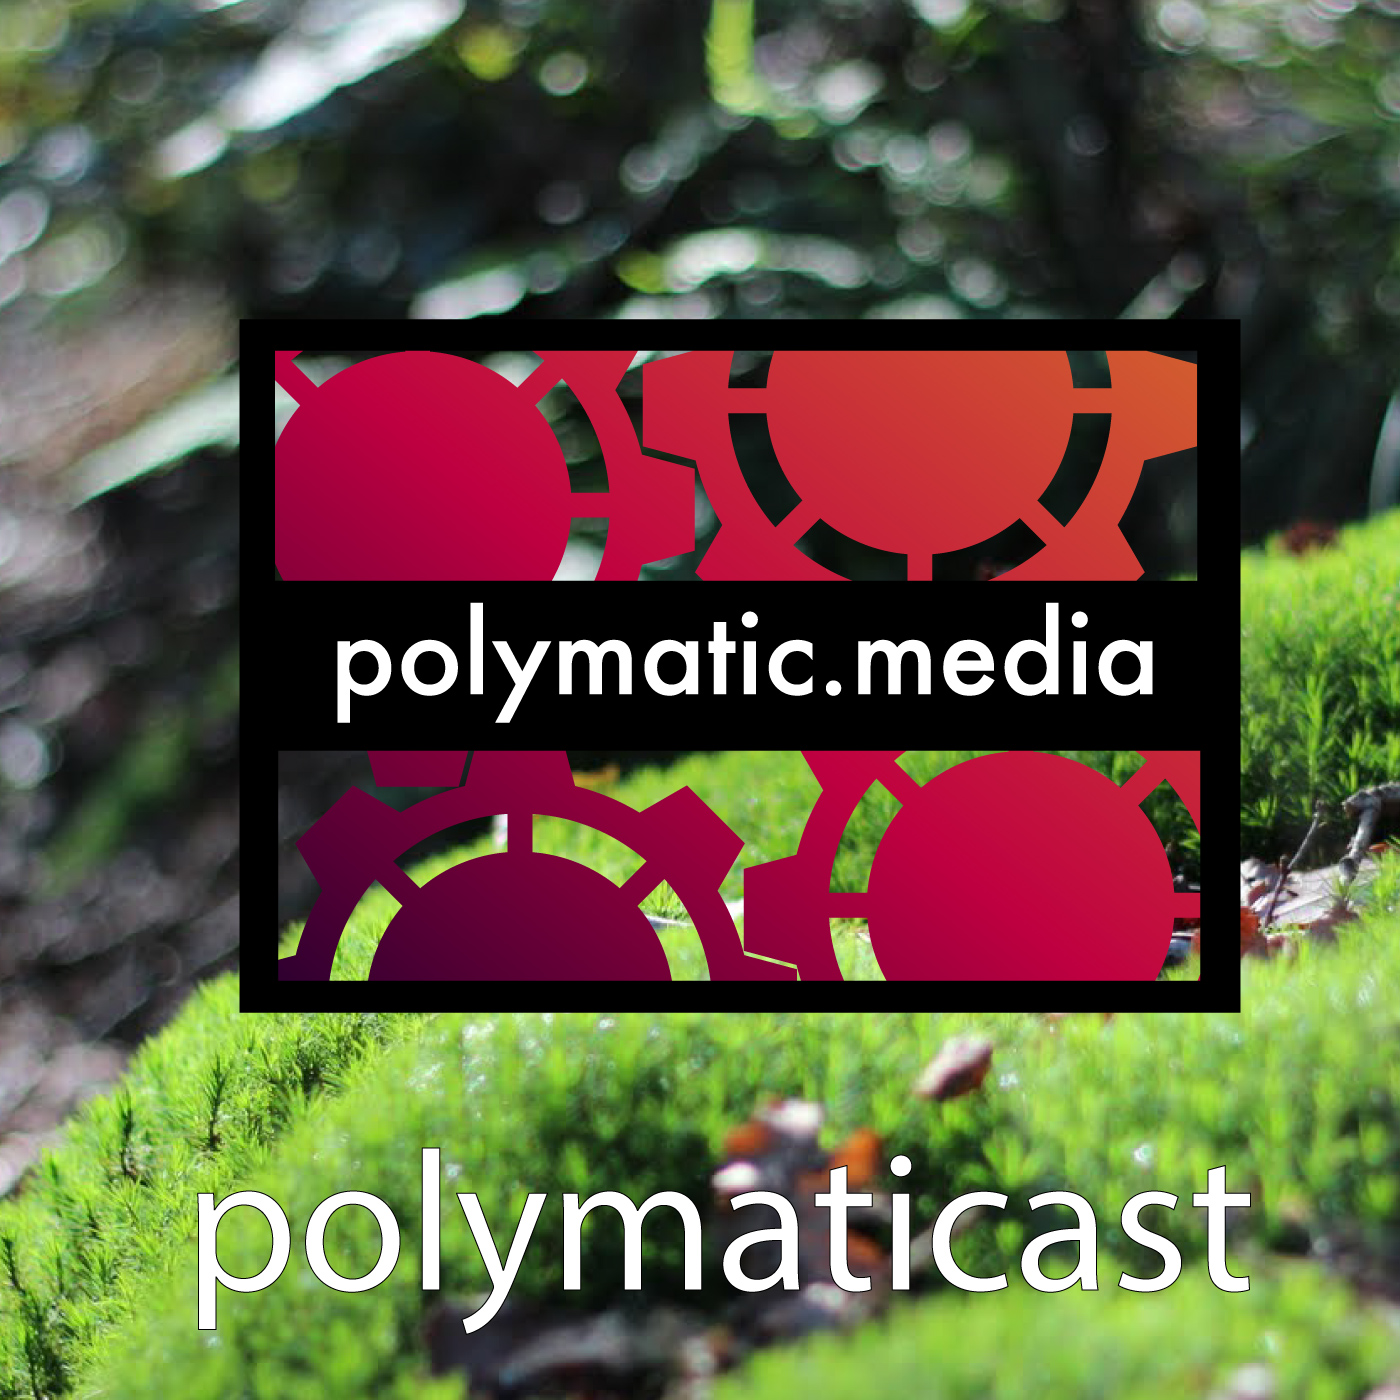 Polymaticast #33 The story of Shortner